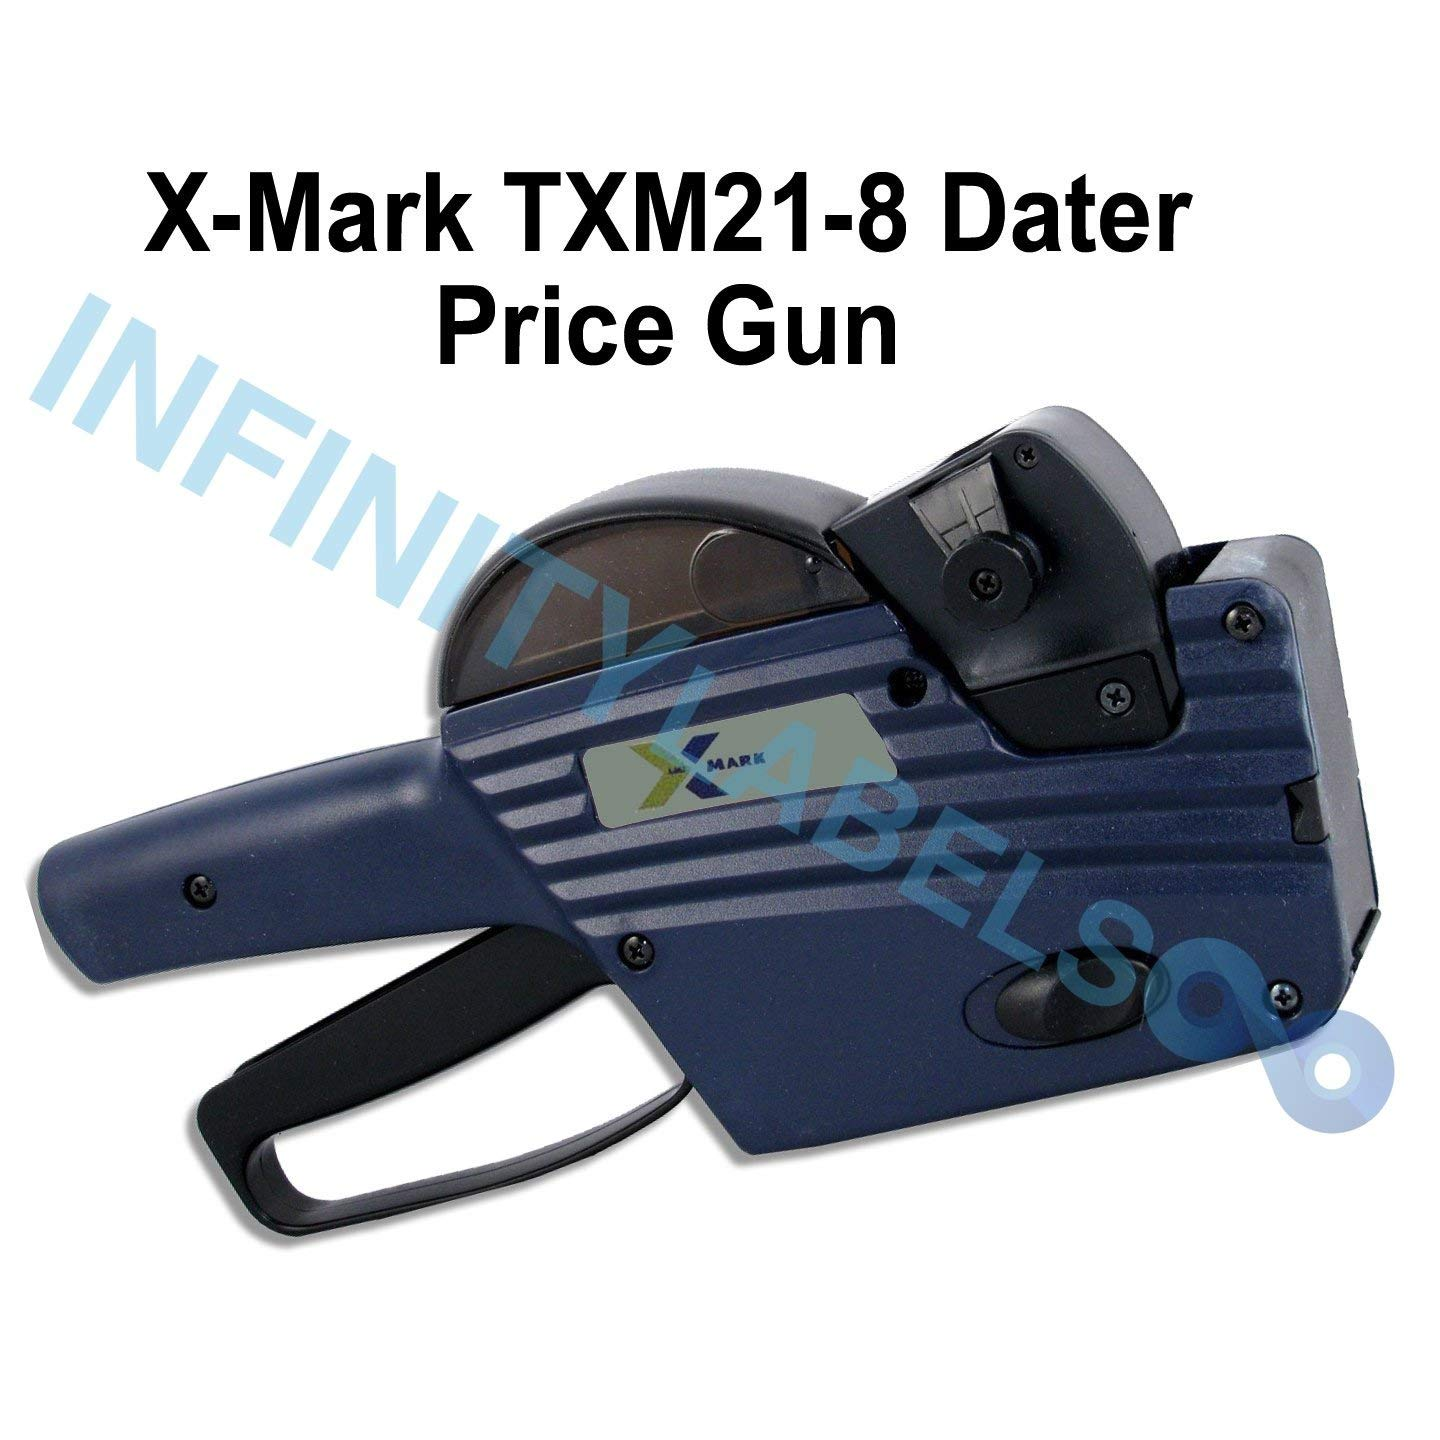 X-Mark Price Gun: TXM21-8DATER [1 Line / 8 Characters] by Infinity Labels